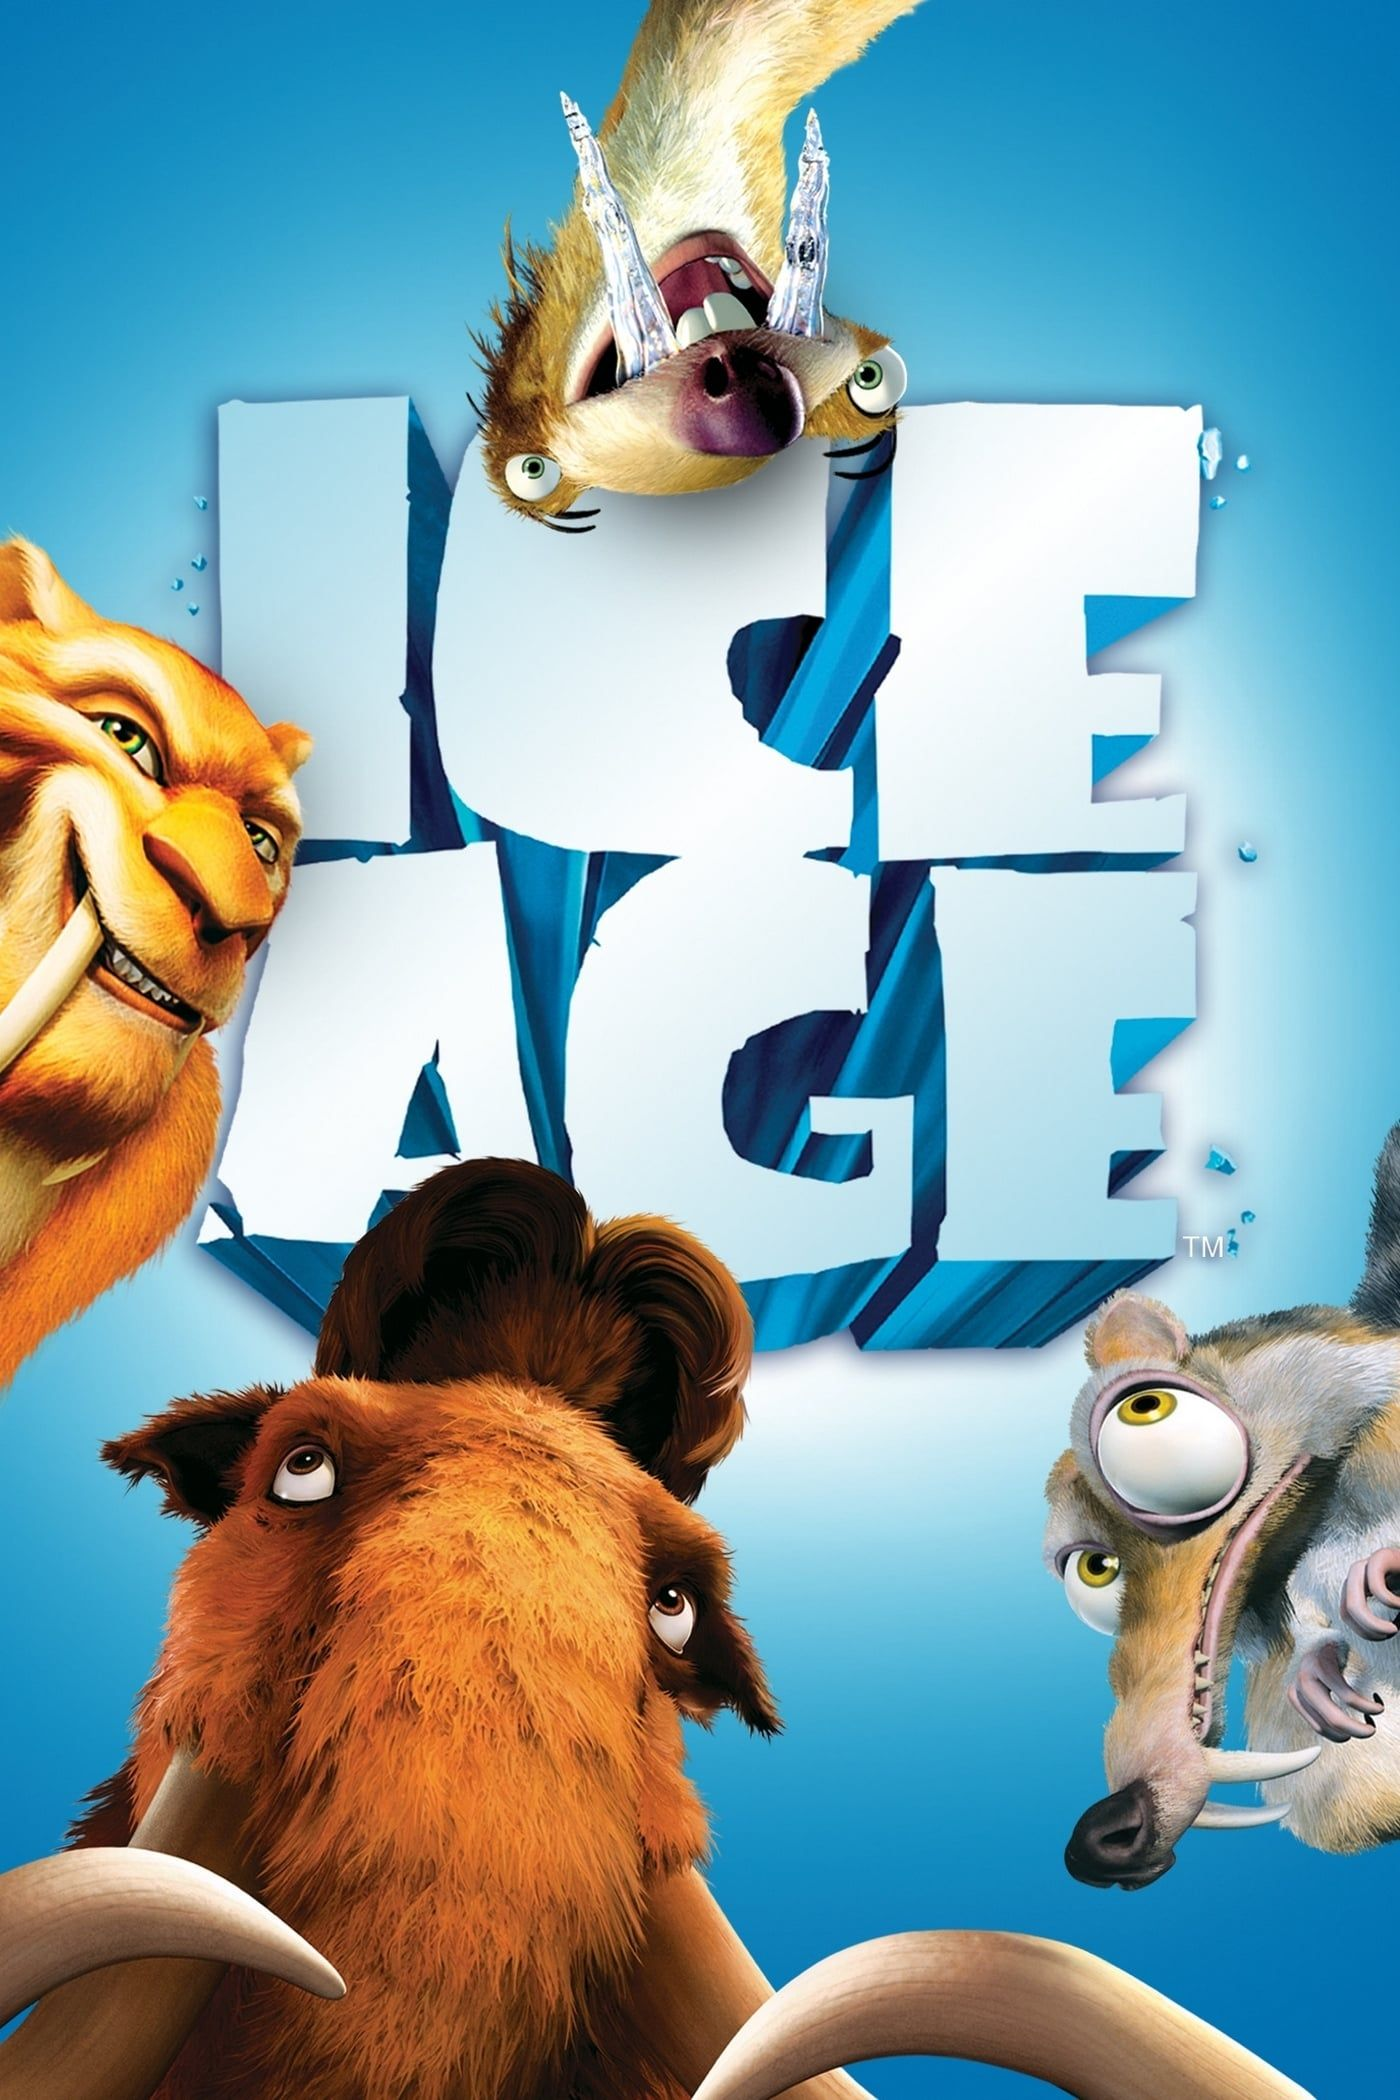 ice age 2 movie download 720p